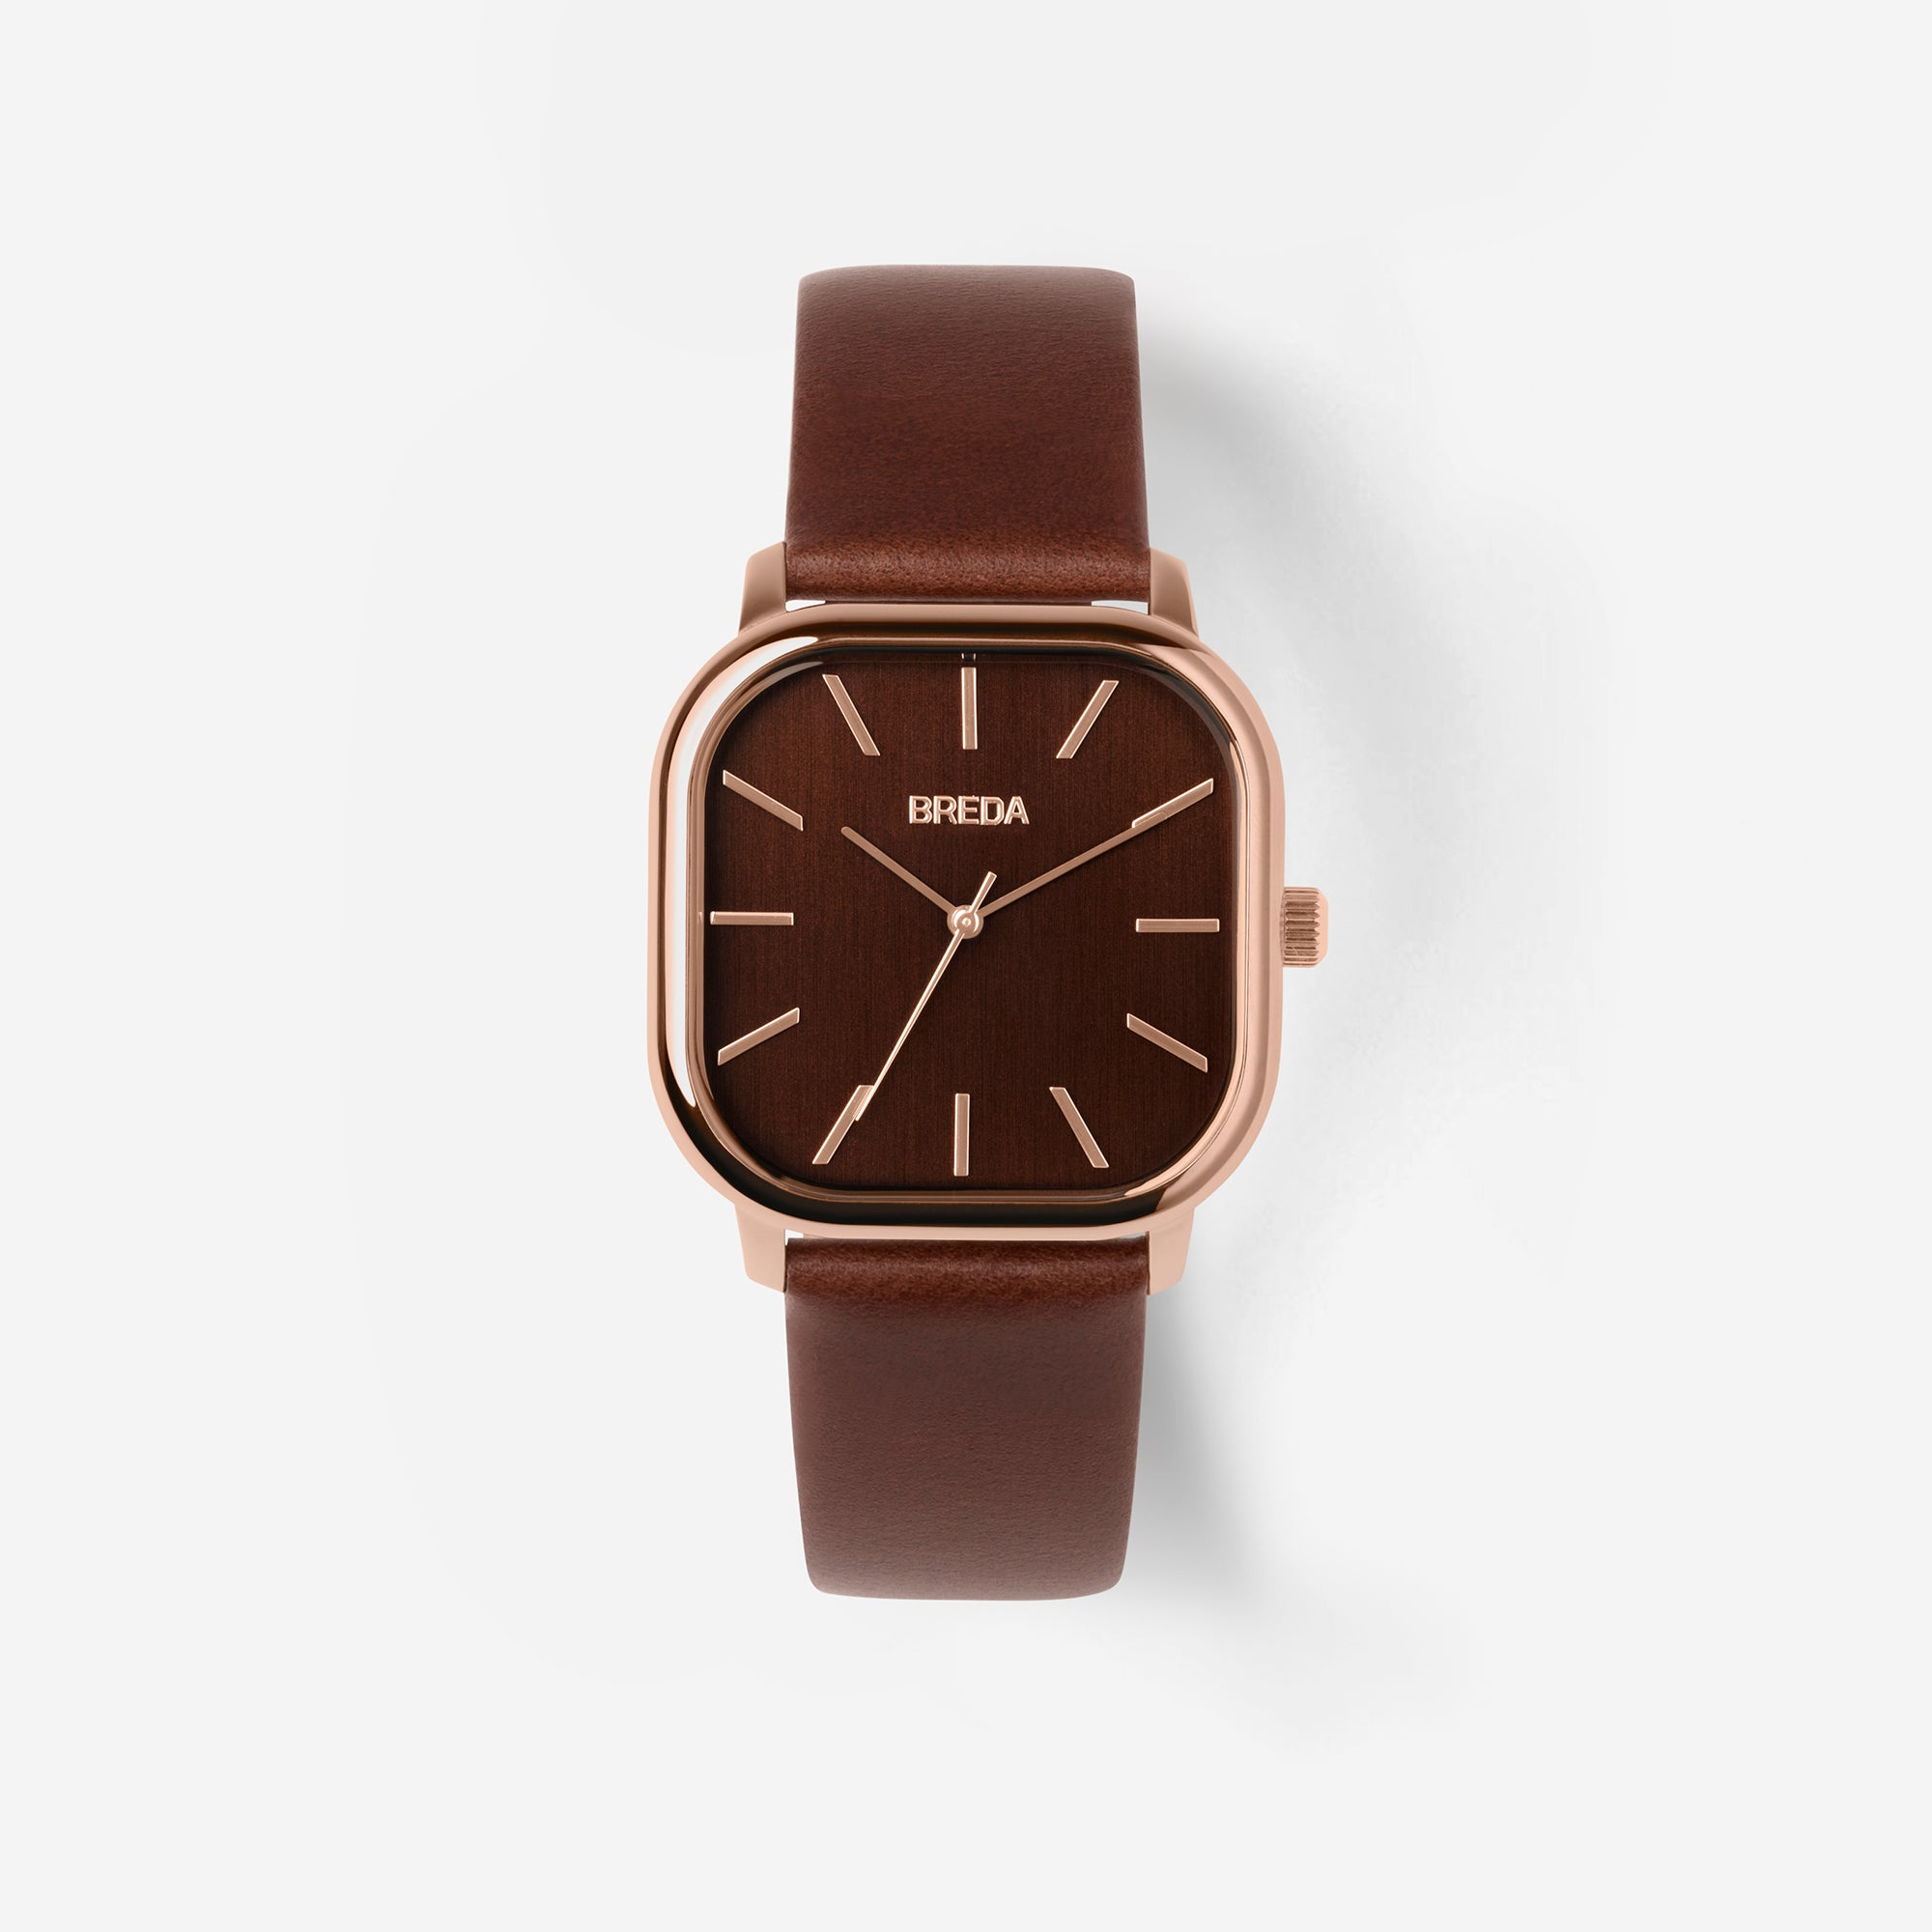 //cdn.shopify.com/s/files/1/0879/6650/products/breda-visser-1728f-rose-gold-brown-leather-watch-front_f166020e-2ba5-478e-9fc6-9a510ed82a38_1024x1024.jpg?v=1543254794